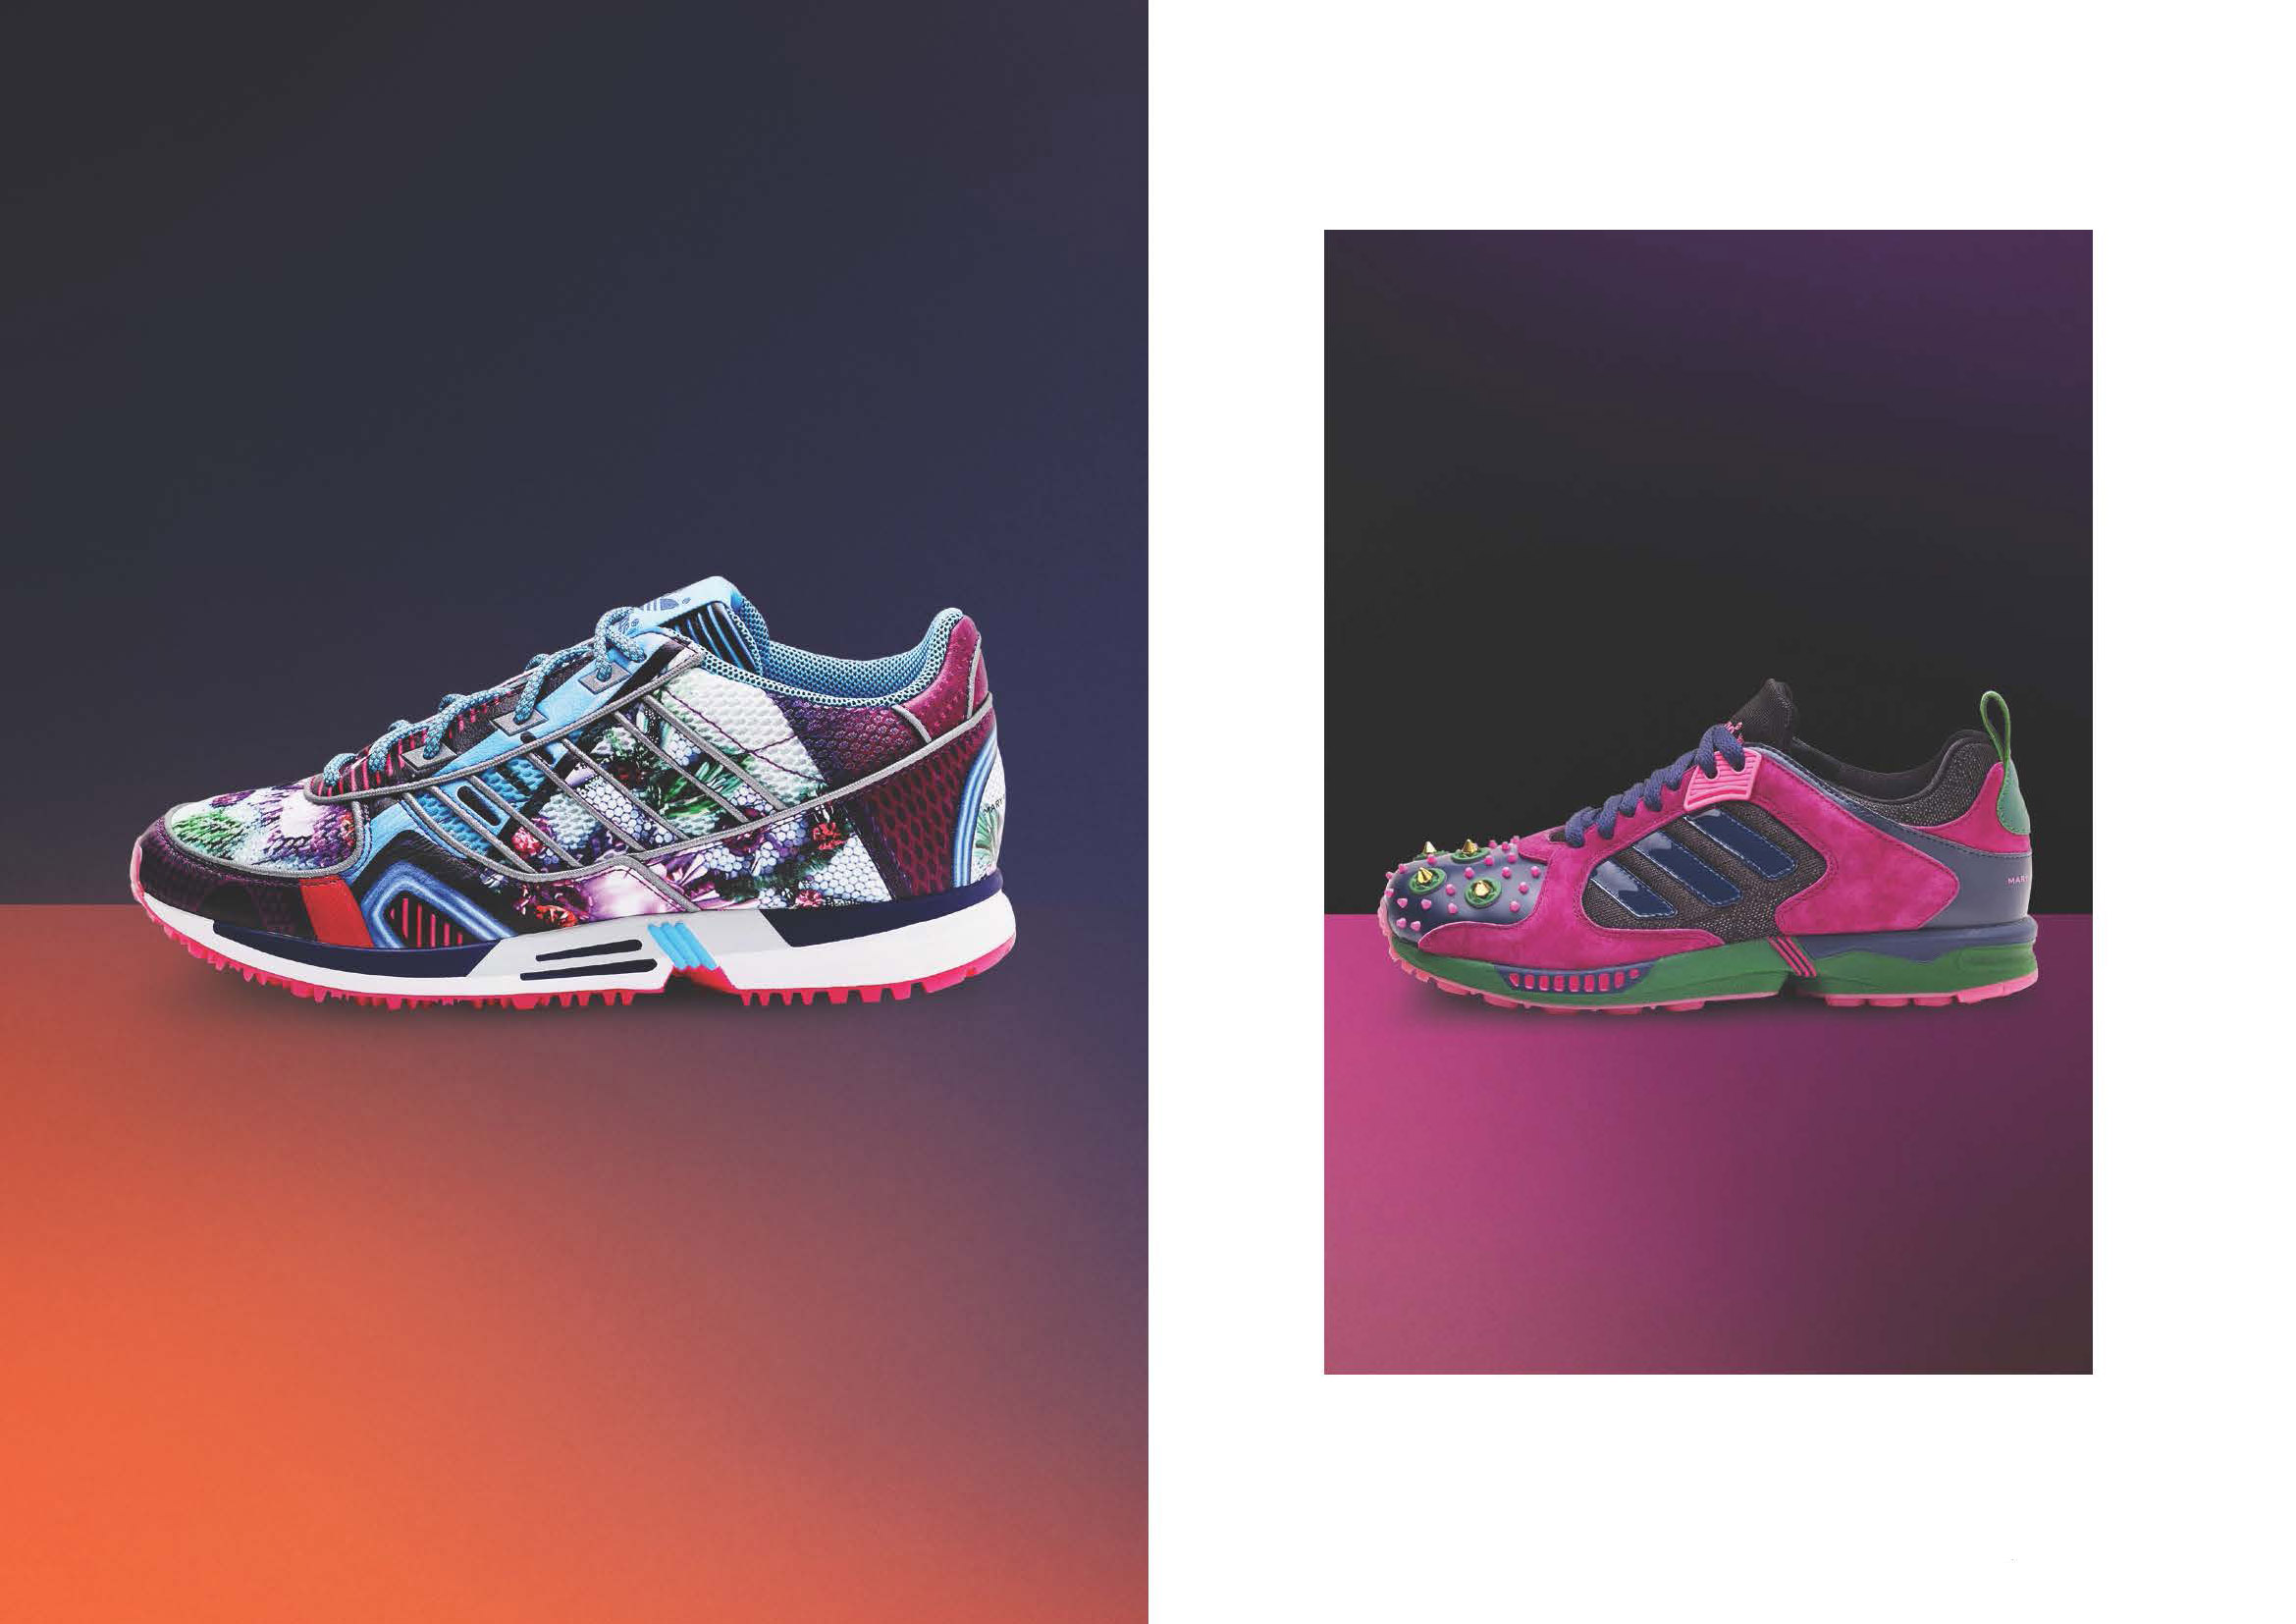 Mary Katrantzou x adidas Originals Footwear Collection